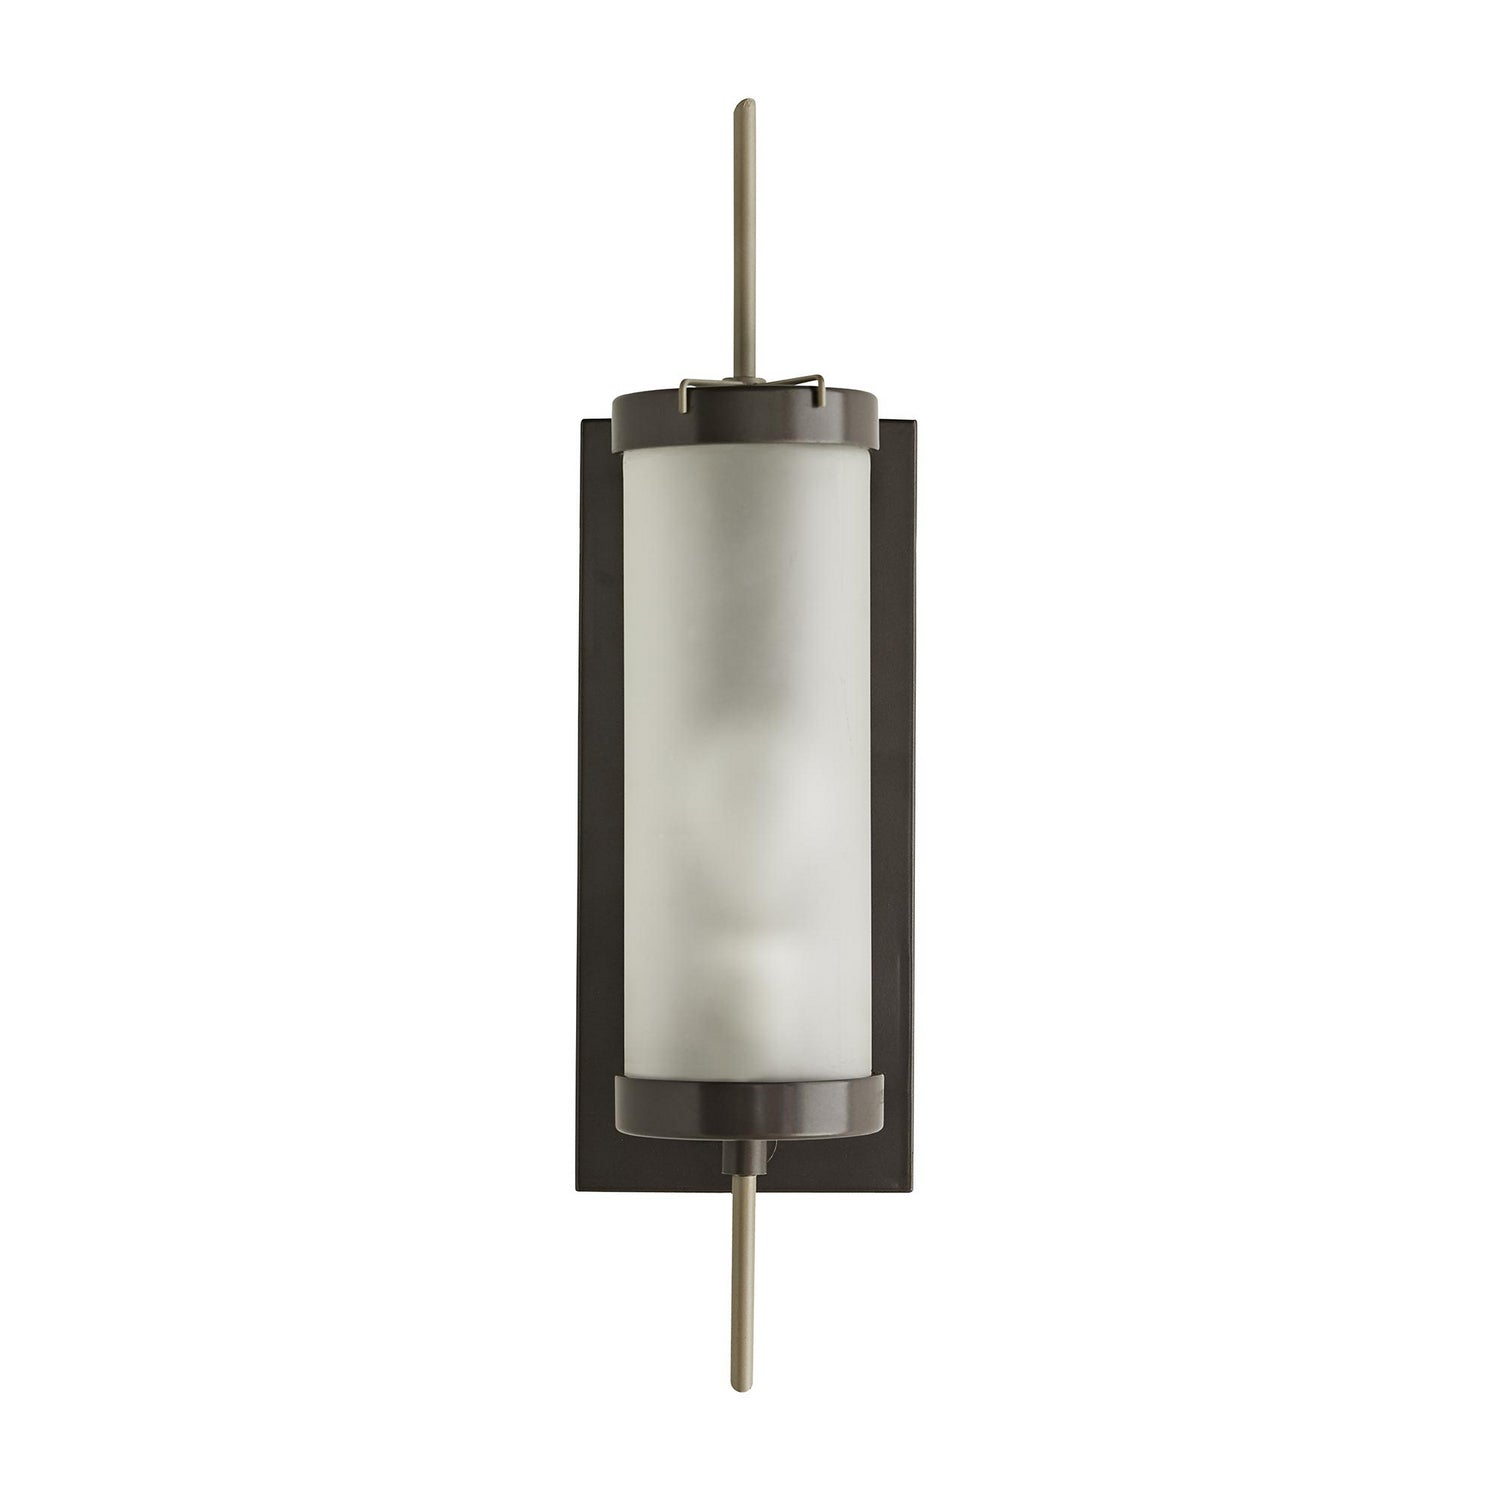 Arteriors - One Light Outdoor Wall Sconce - Stefan - Aged Iron